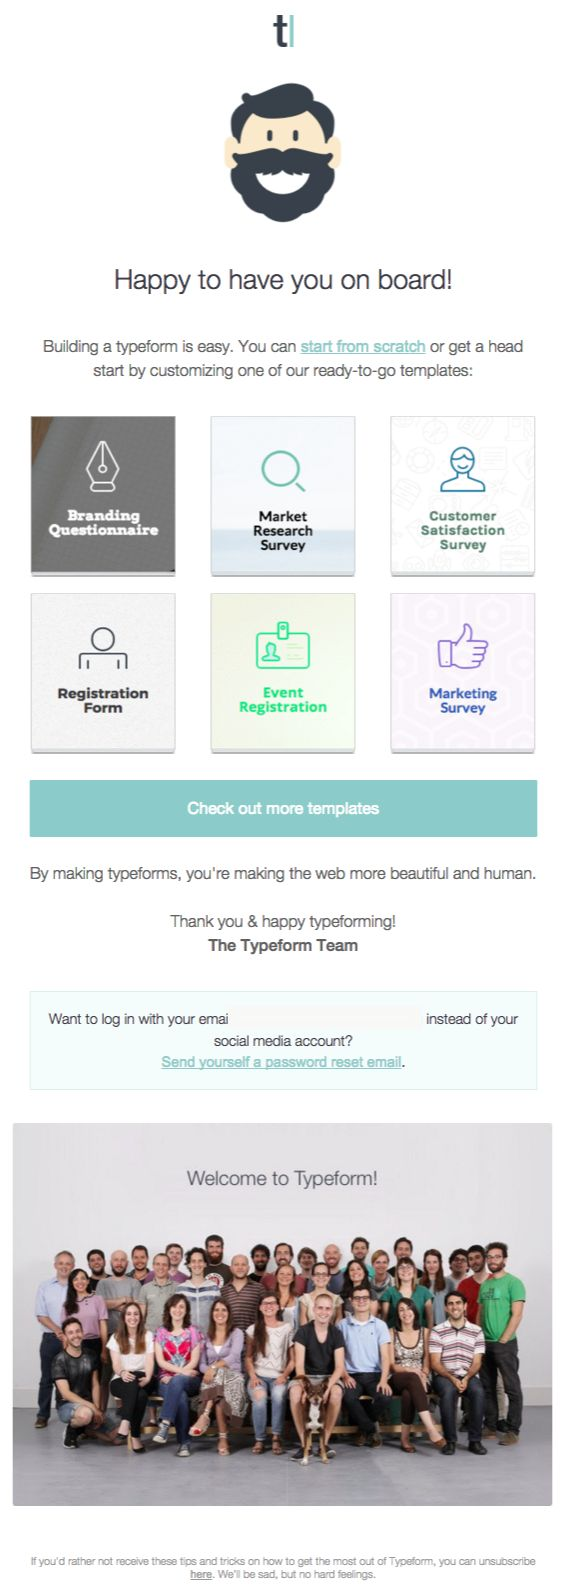 Typeform welcome email